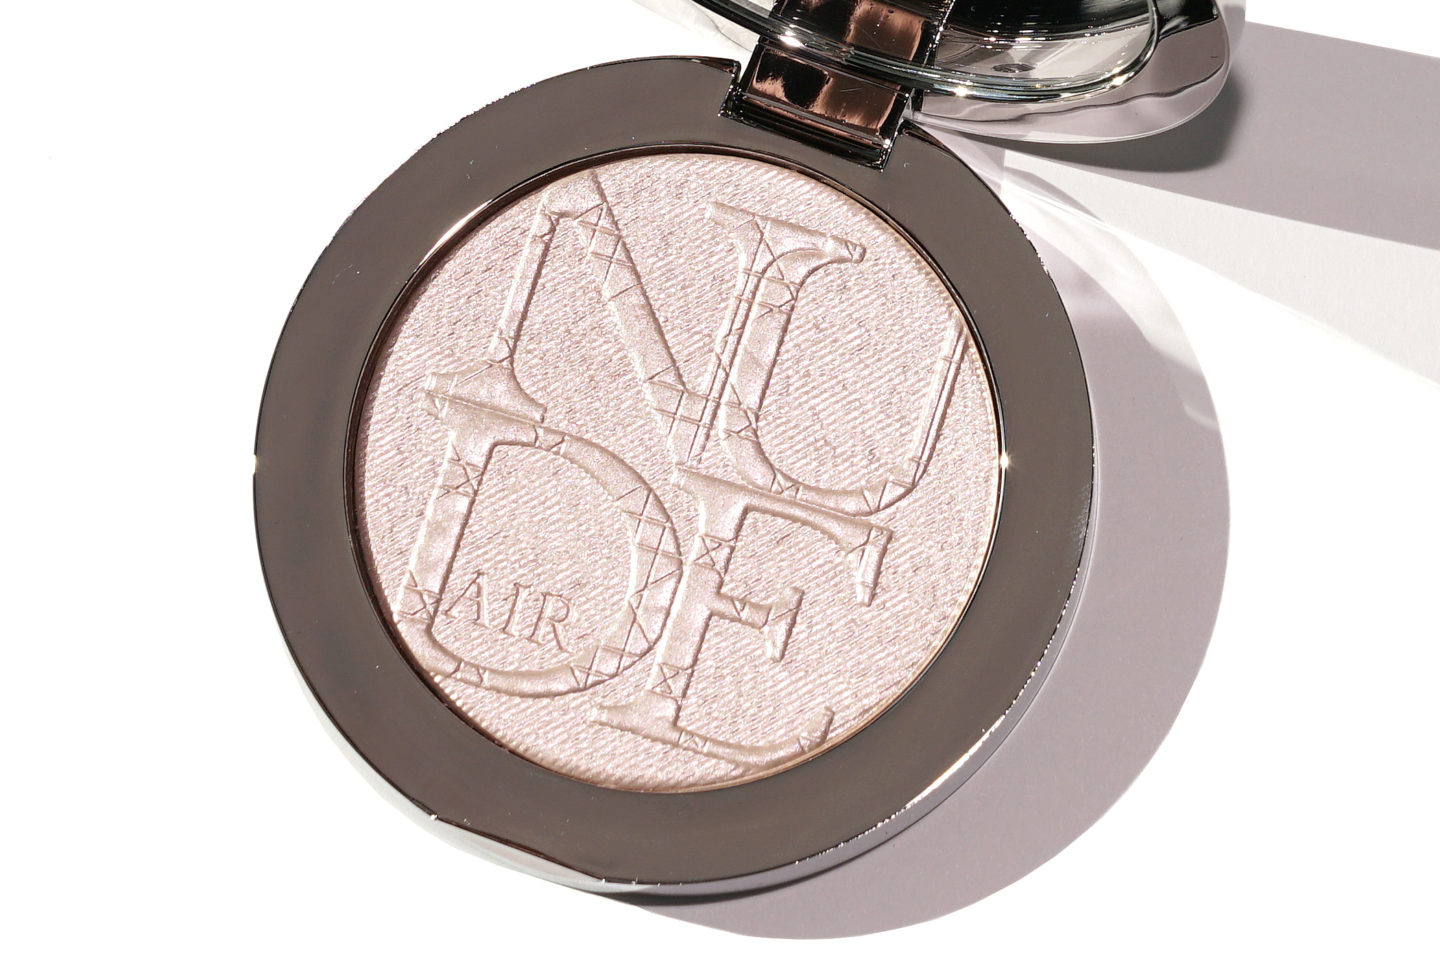 Diorskin Nude Air Luminizer Powder 002 | The Beauty Look Book